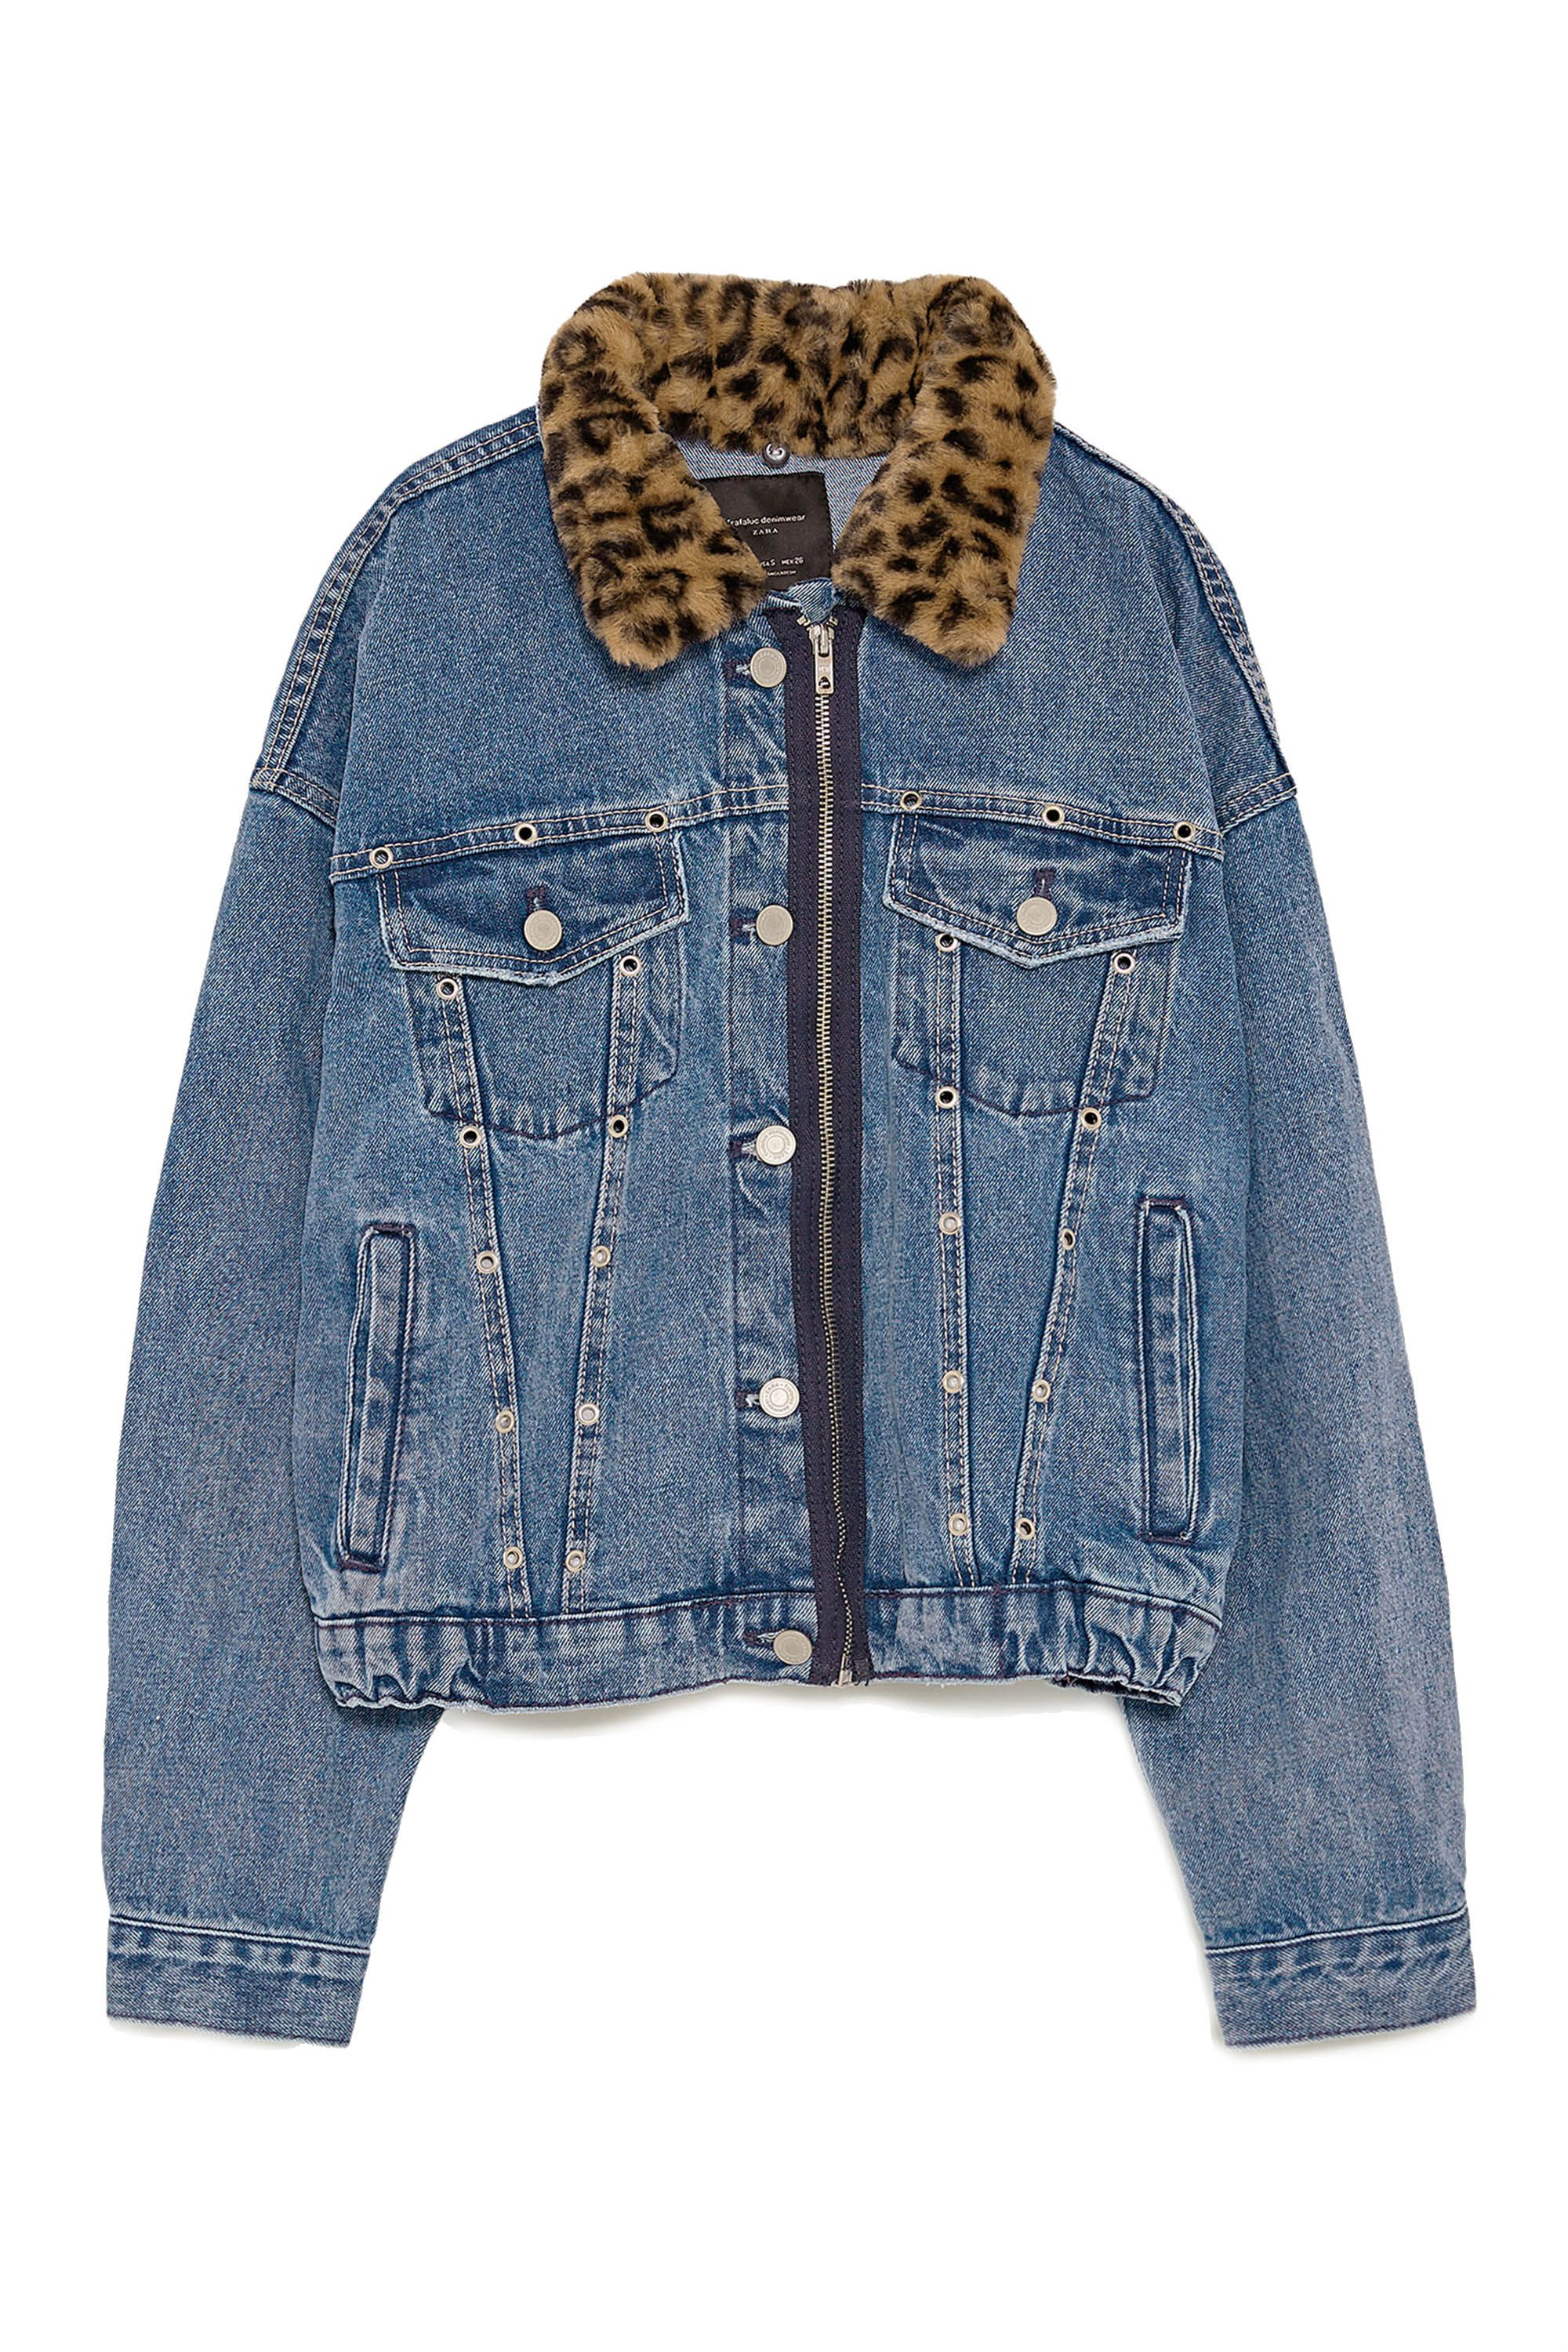 15 Denim Jackets for Women - Classic Jean Jacket Options for ...